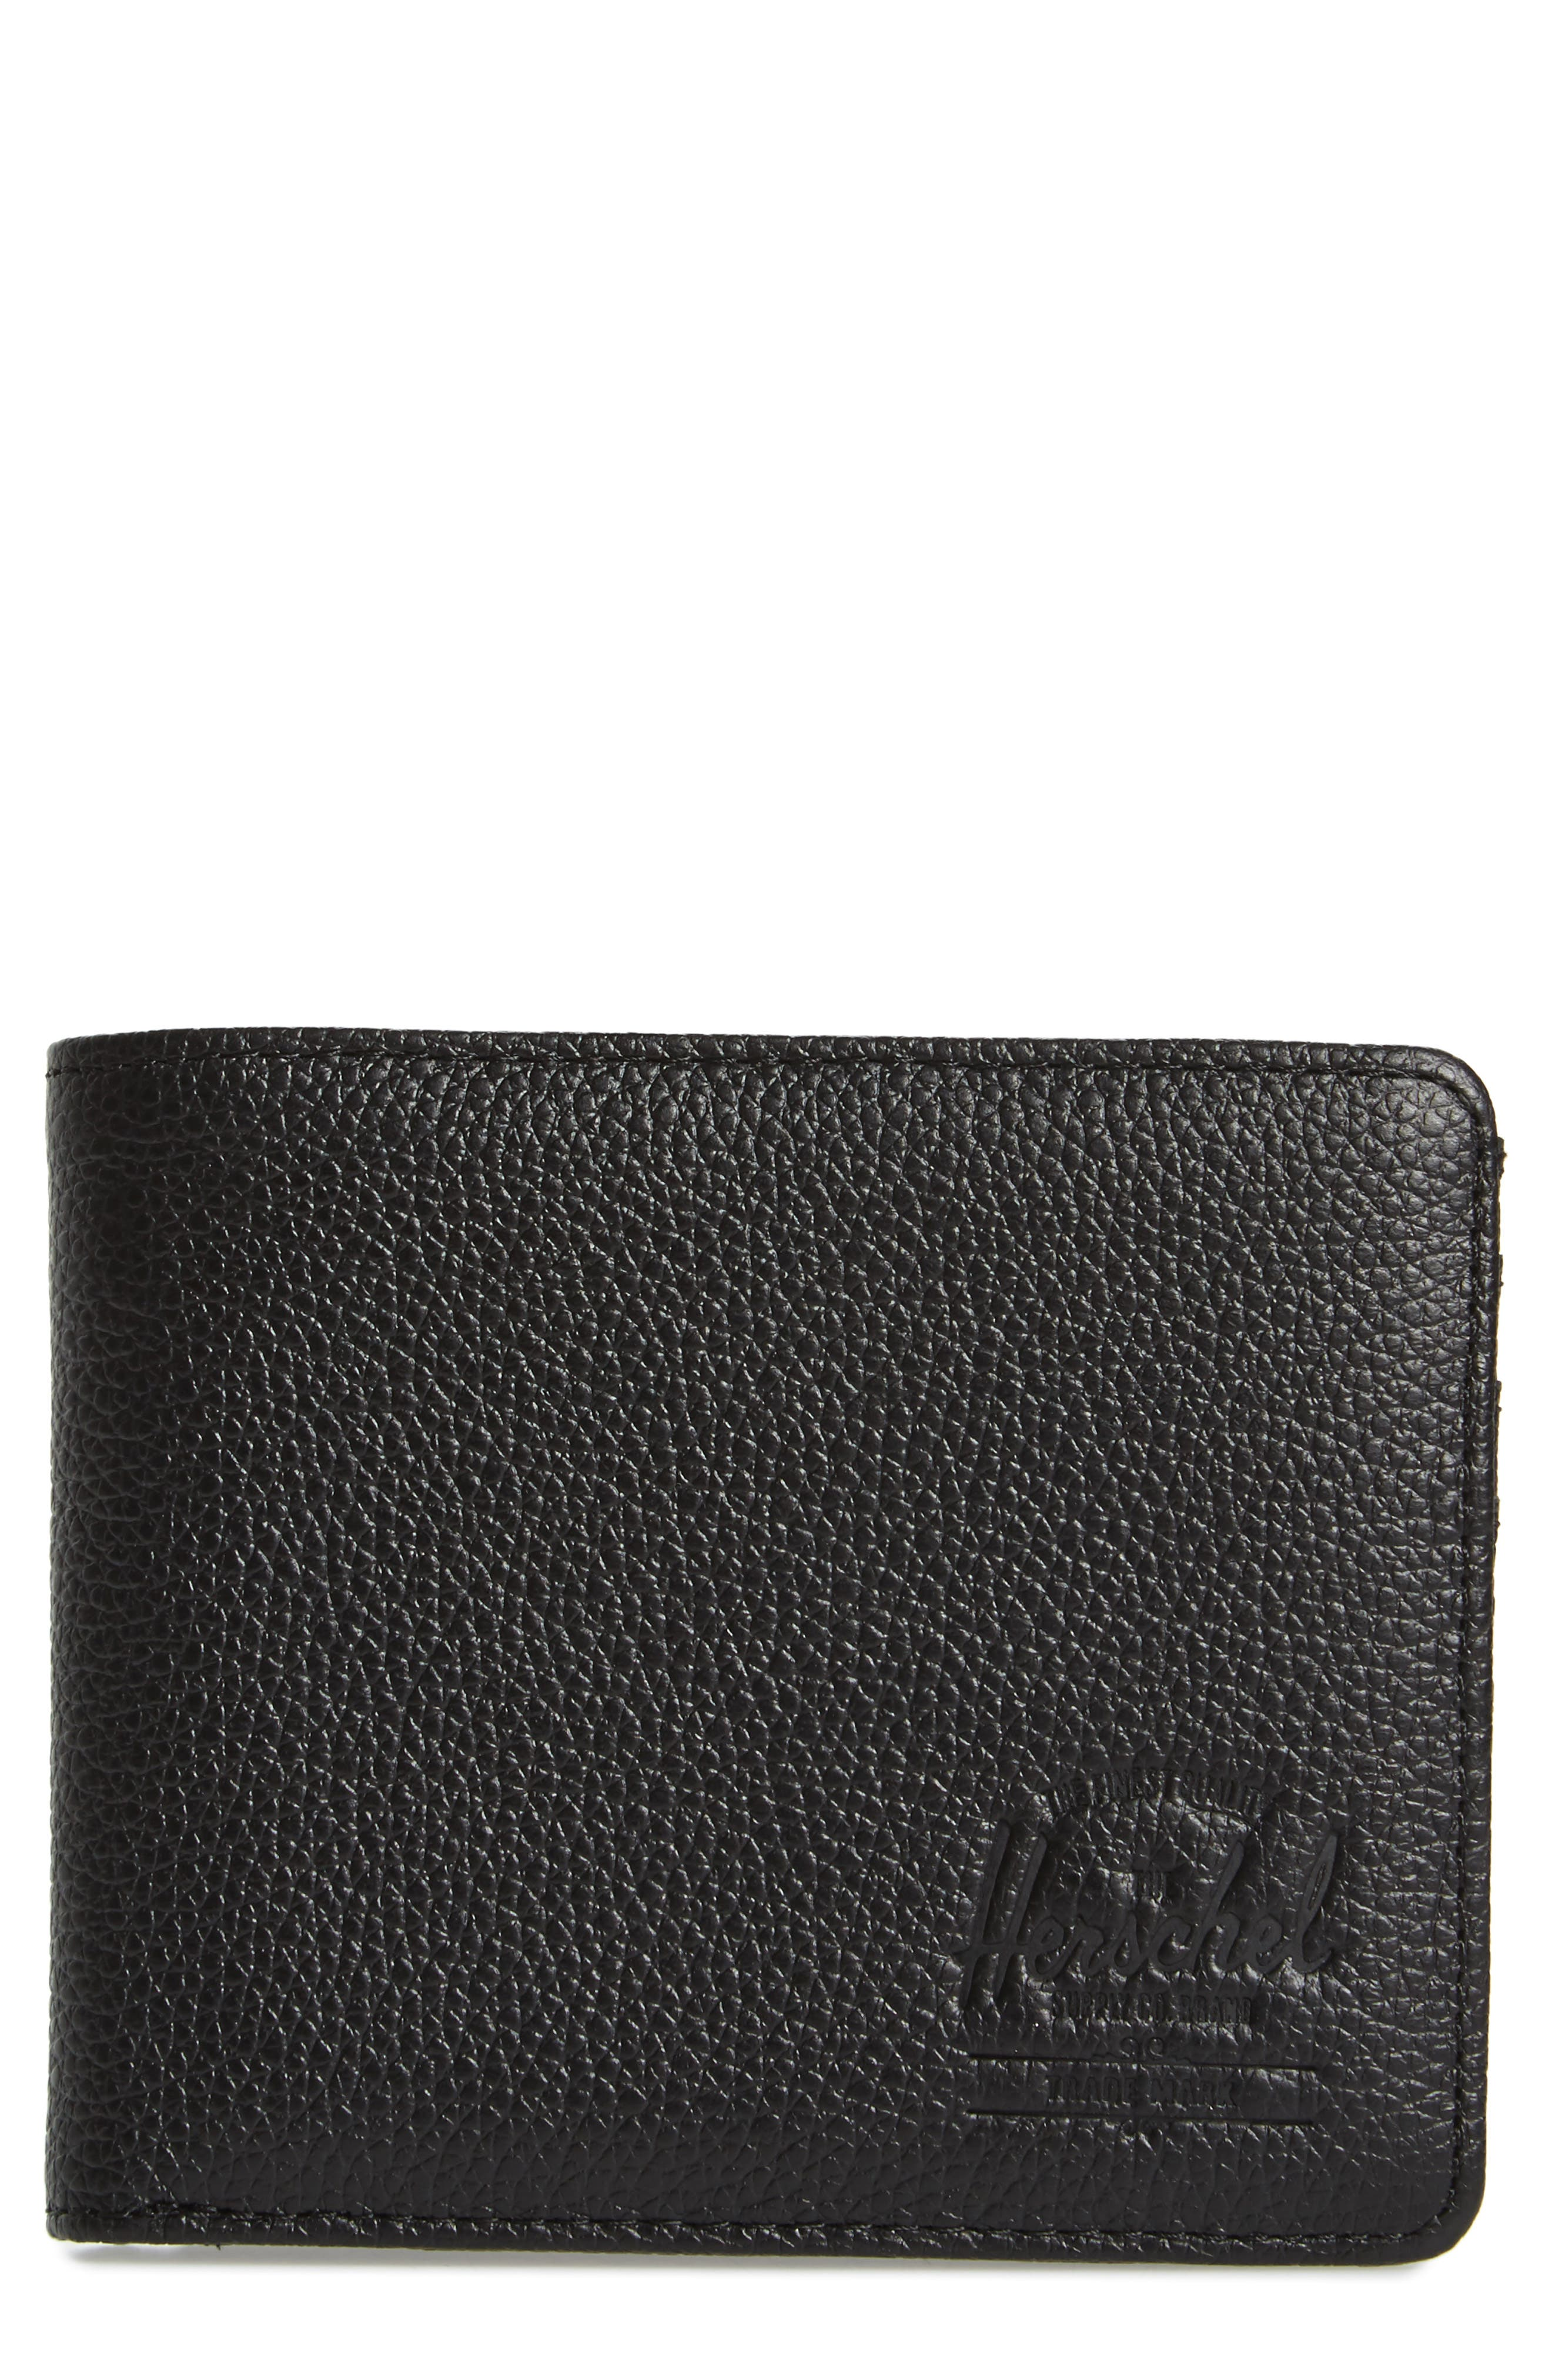 Tile Roy Leather Bifold Wallet,                             Main thumbnail 1, color,                             Black Pebbled Leather